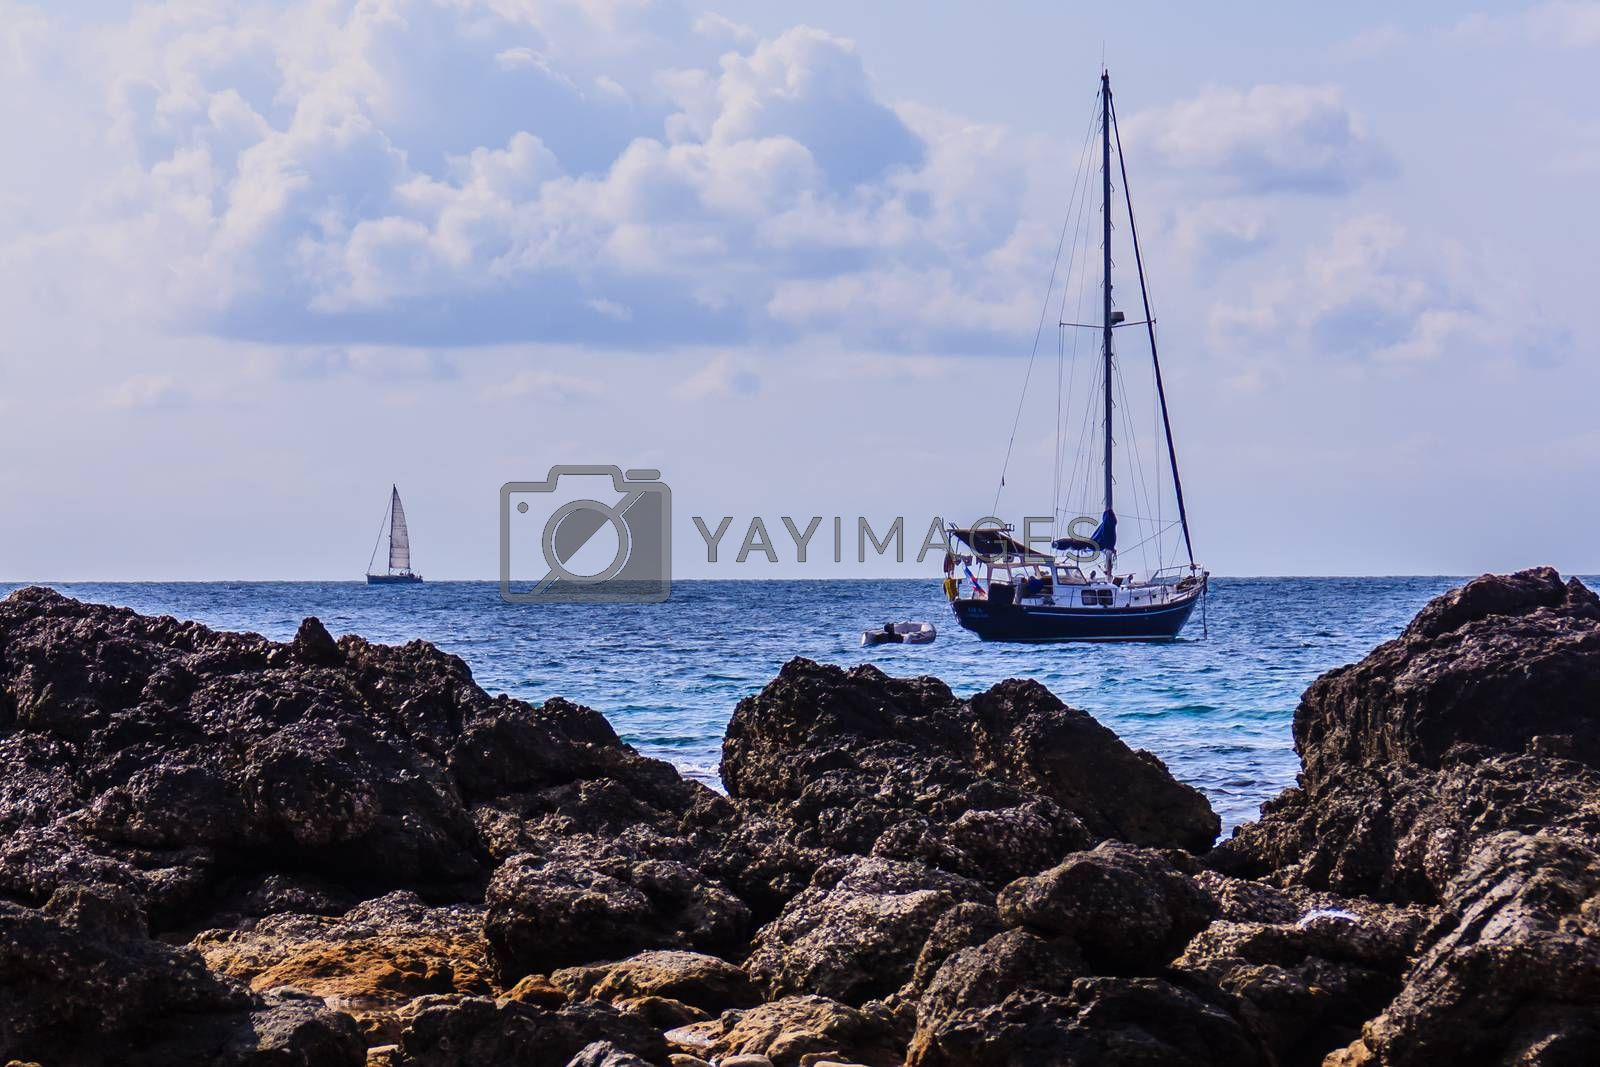 Colorful marine landscape with sail boat against deep blue sea under blue sky in the ocean on the cloudy day.